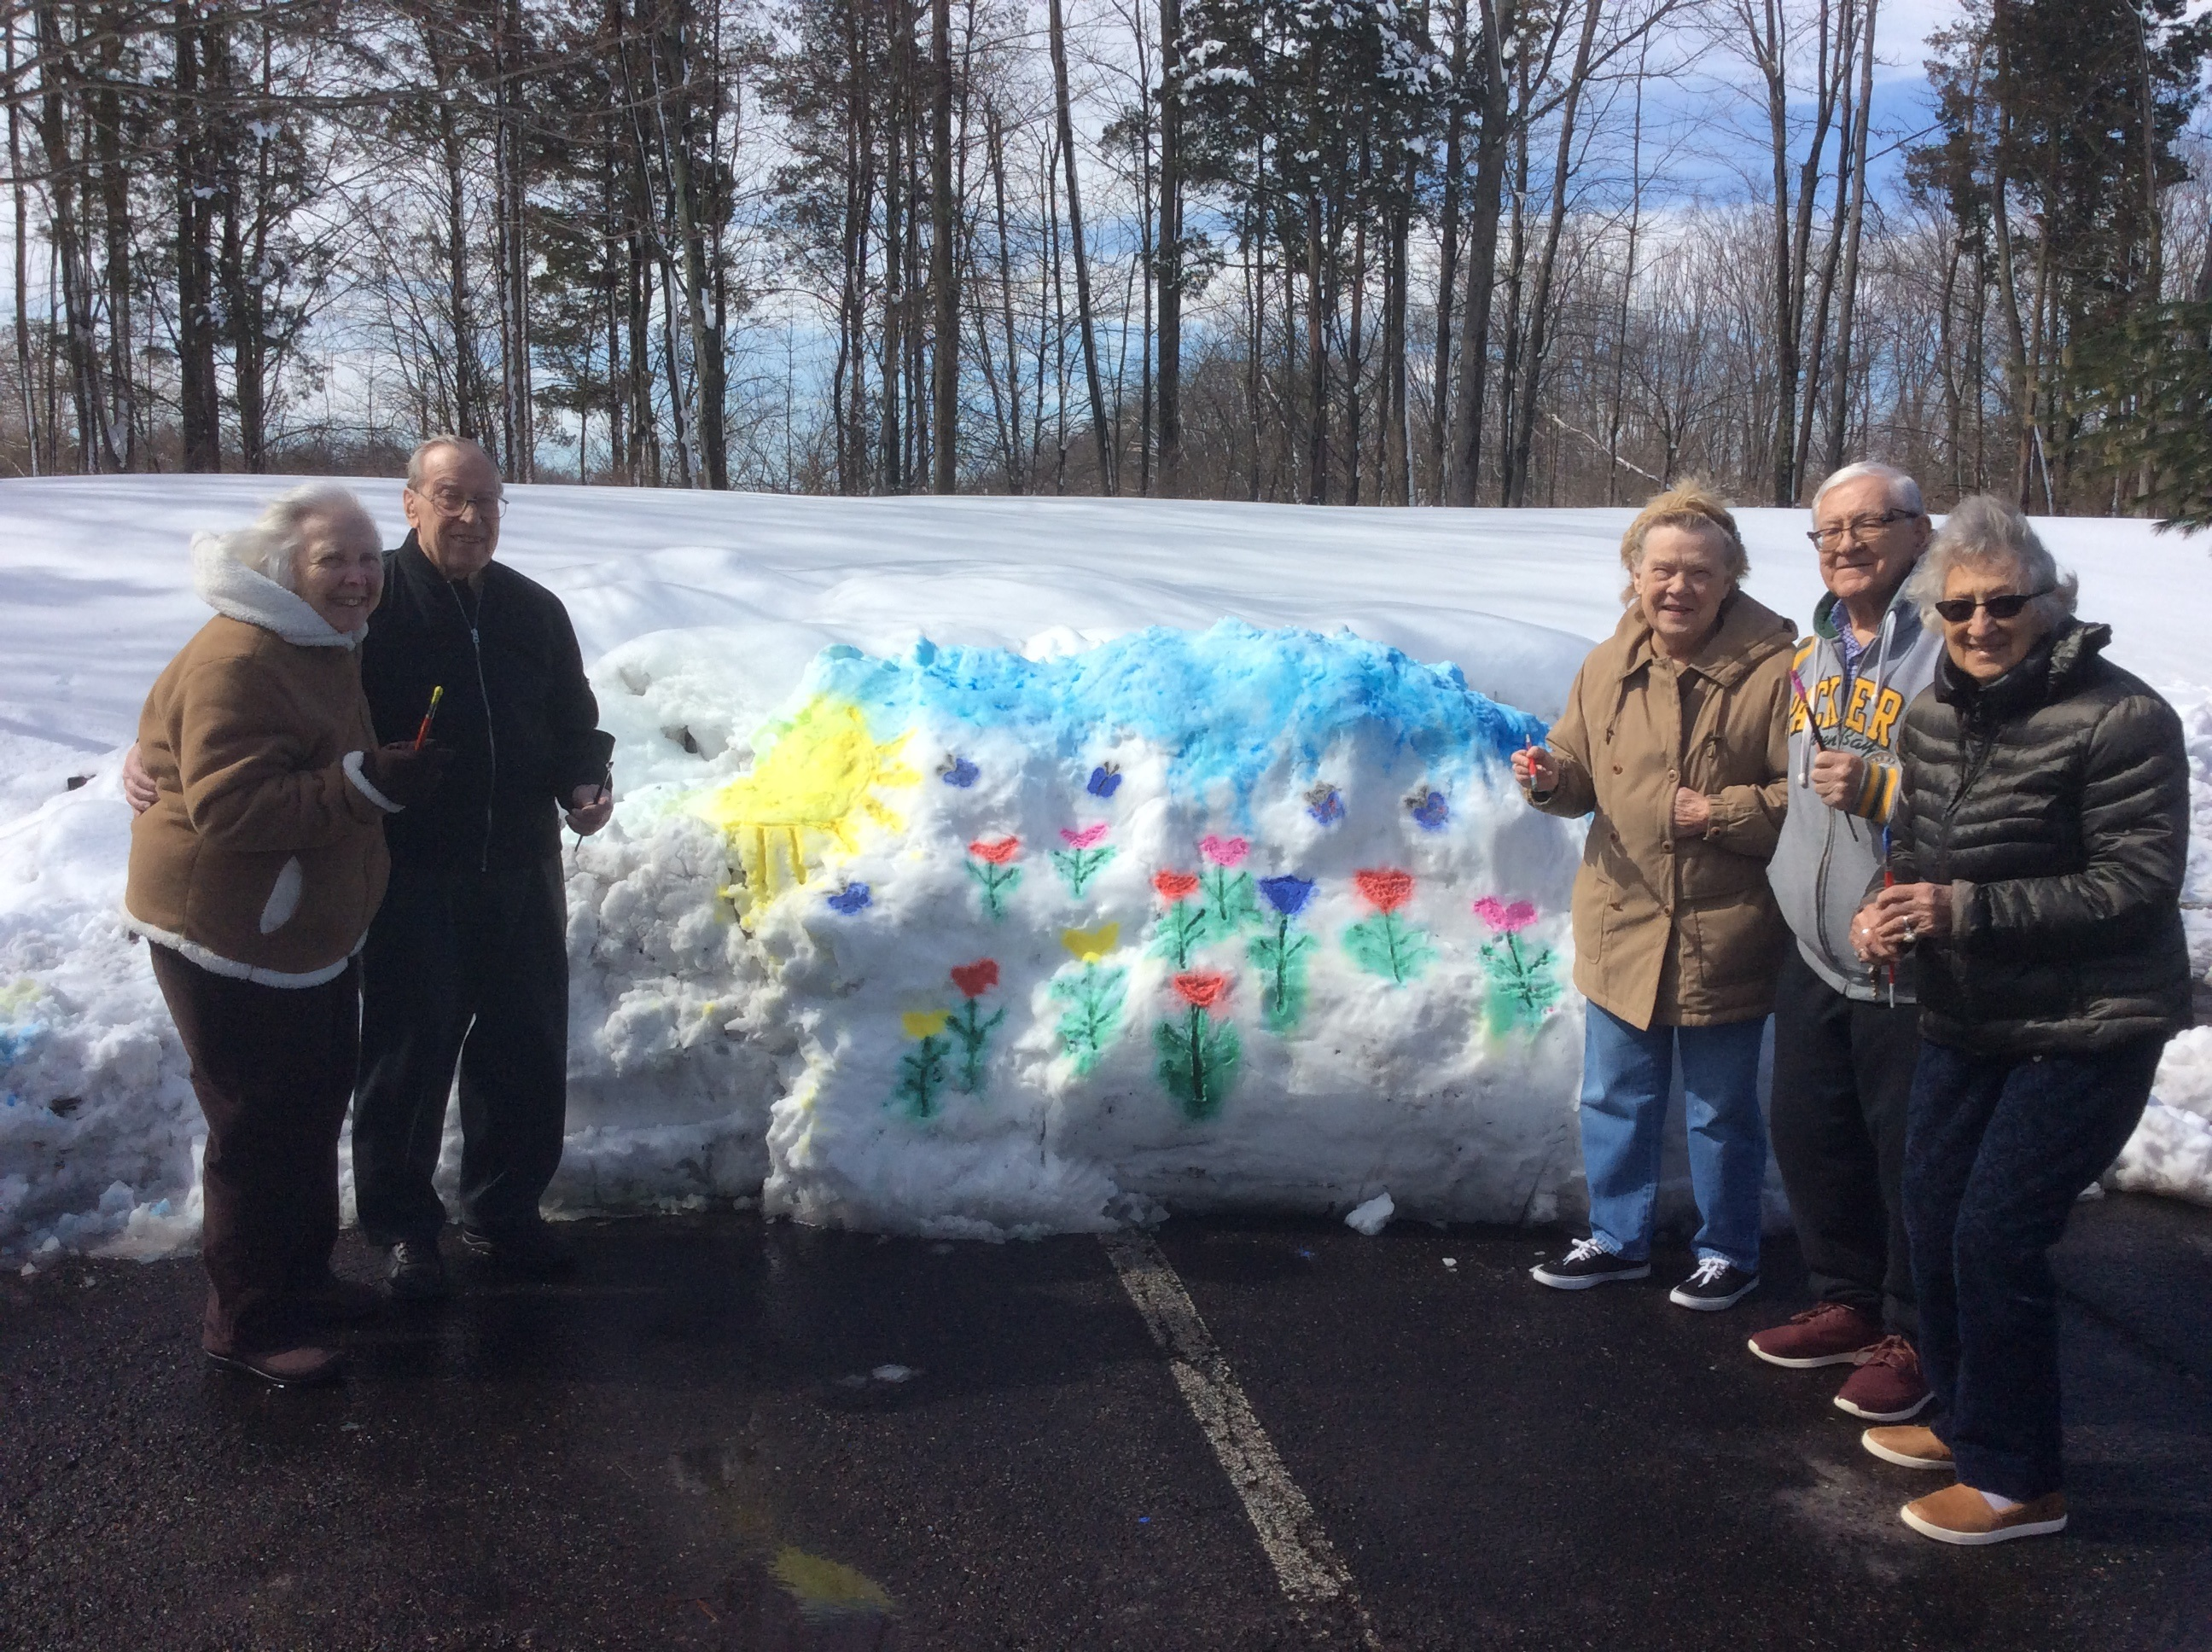 Seniors Pose with Snow Art